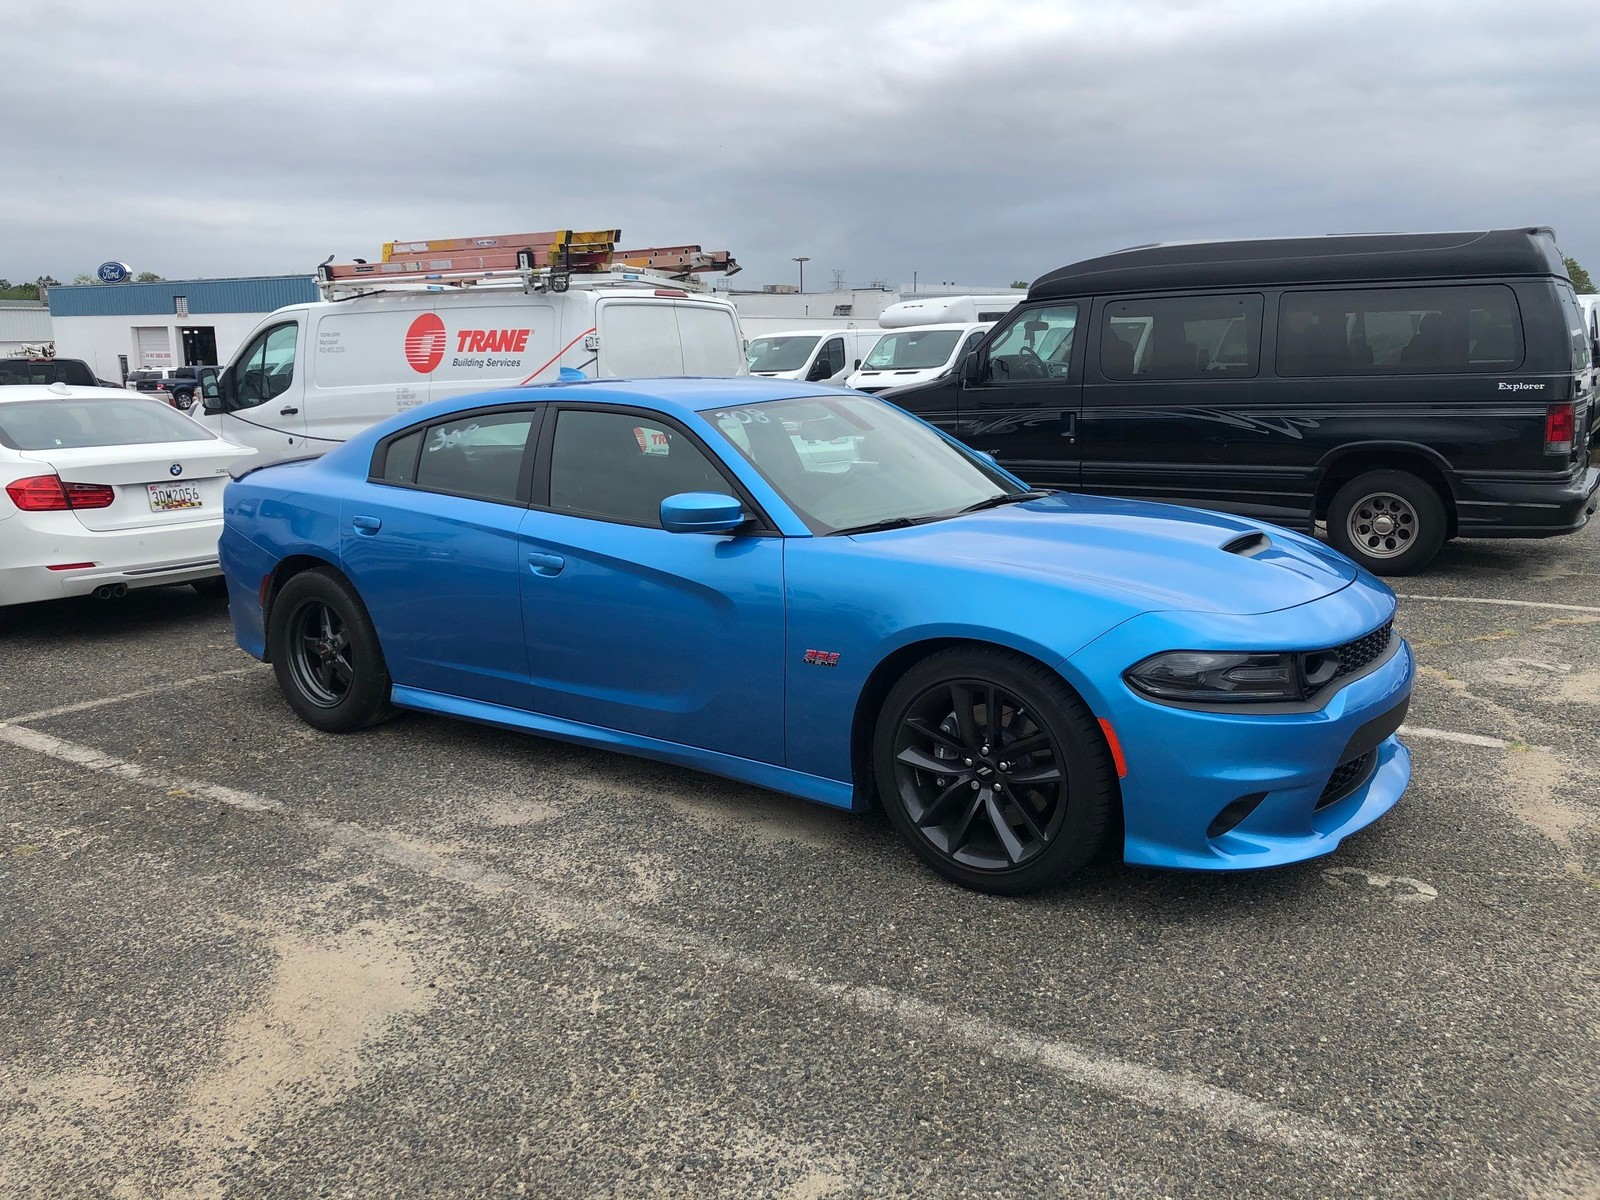 B5 Blue 2019 Dodge Charger Scat Pack